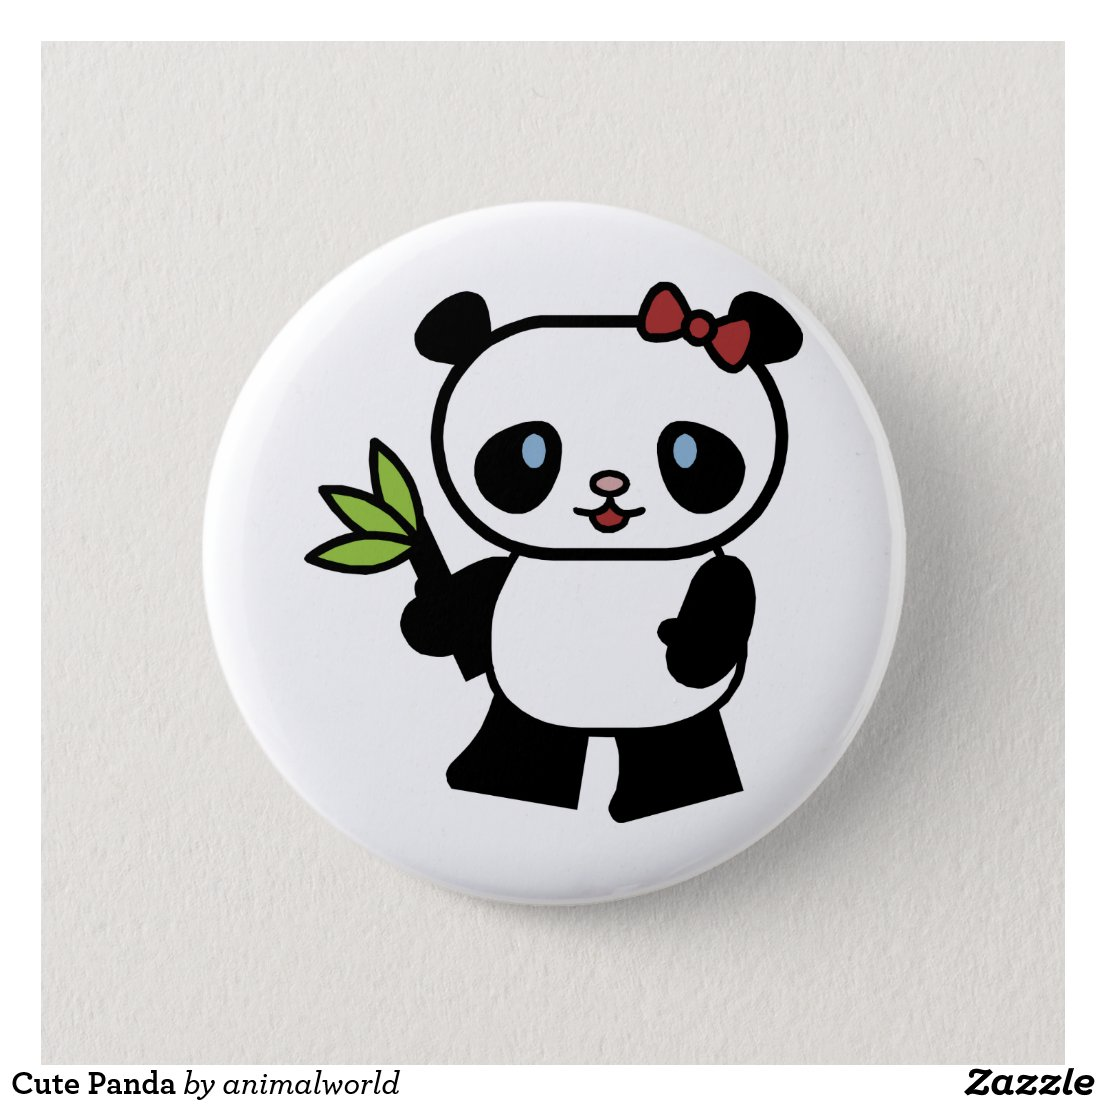 Cute Panda Badge